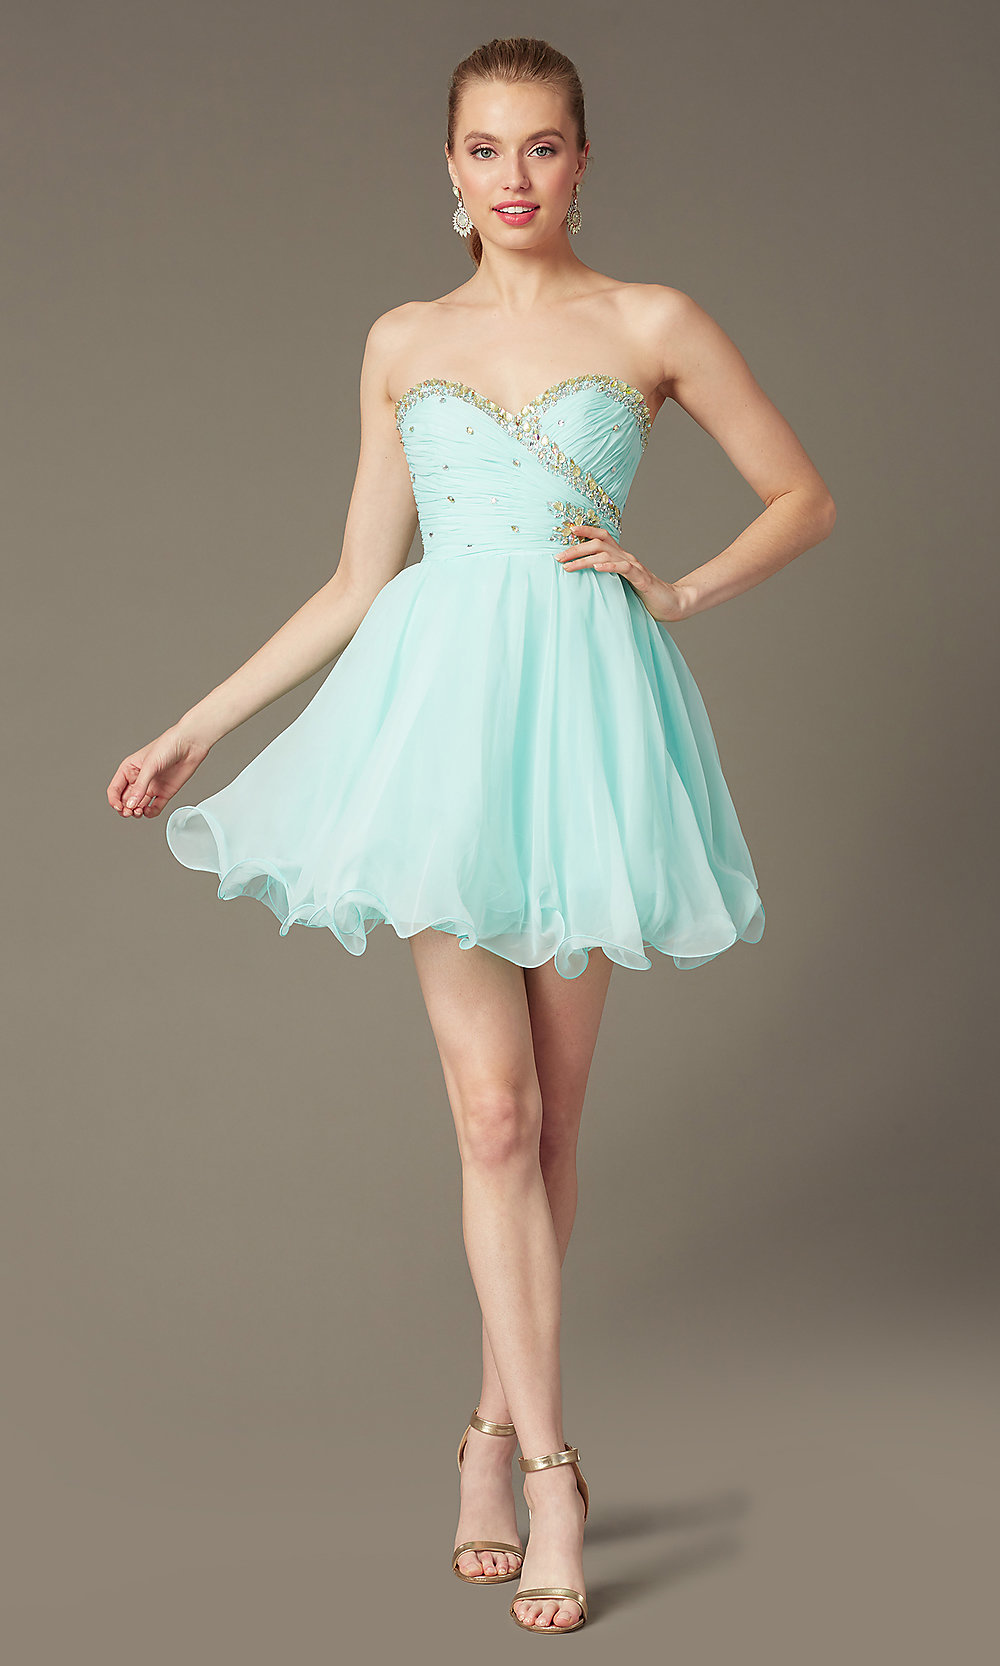 Short Strapless Prom Dresses, Party Dresses- PromGirl